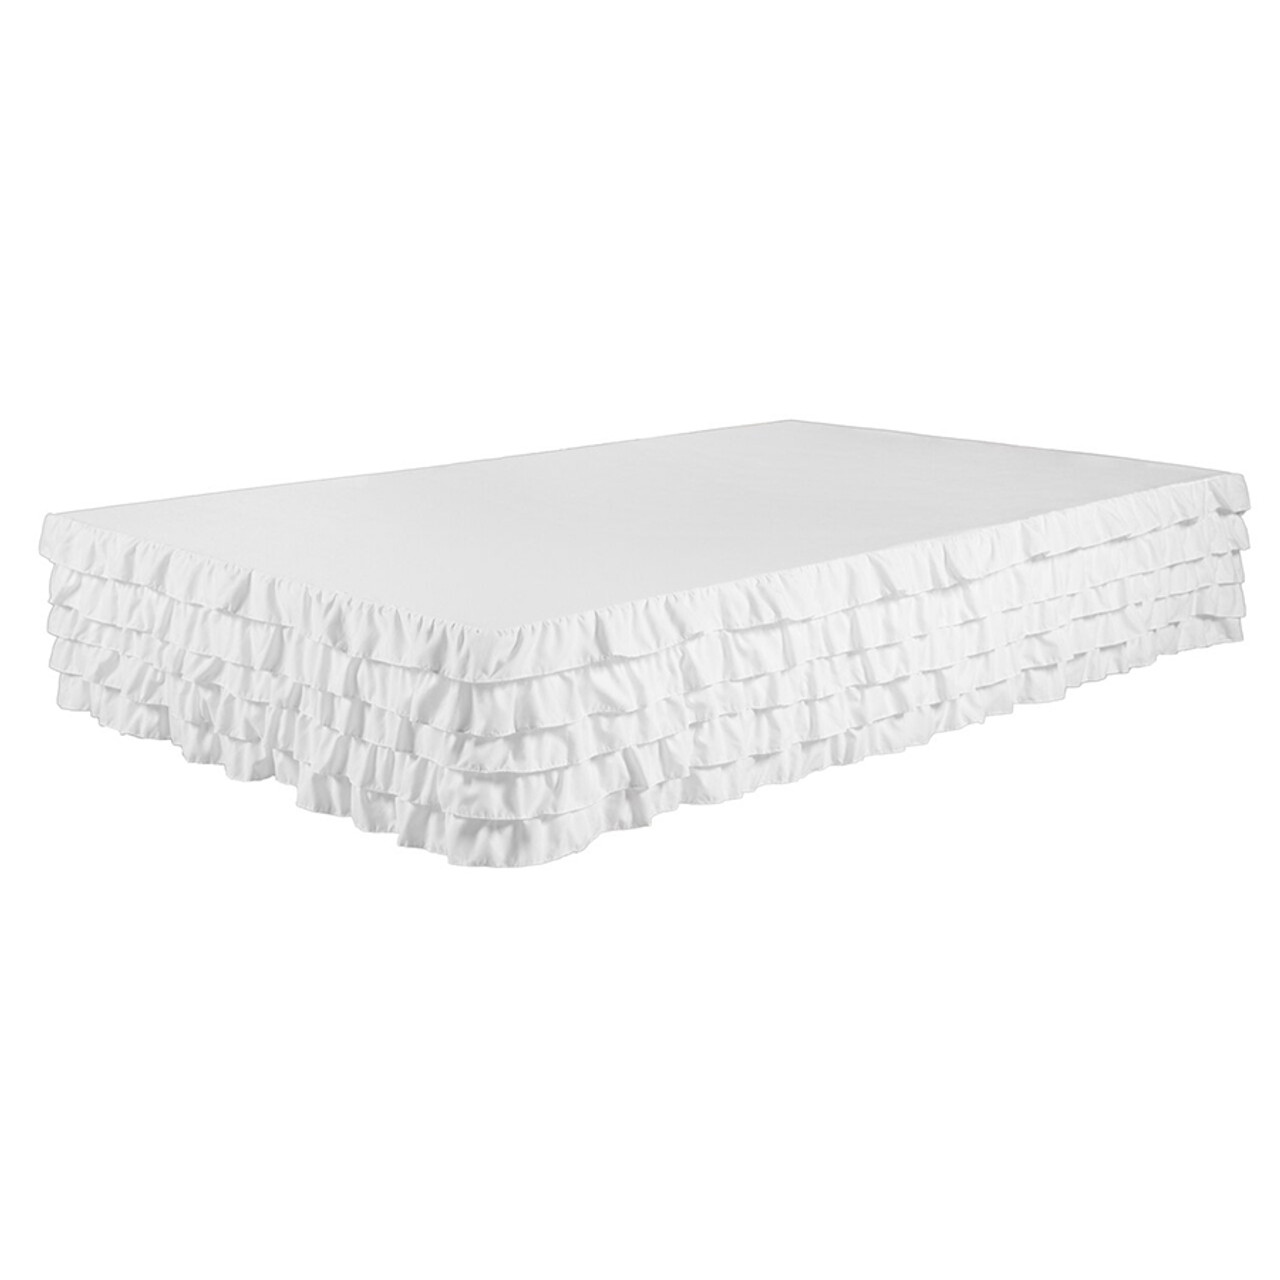 """White Bed Skirt Tiered Dust Ruffle 100% Brushed Microfiber with 14"""" Drop in USA, California, New York, New York City, Los Angeles, San Francisco, Pennsylvania, Washington DC, Virginia, Maryland"""